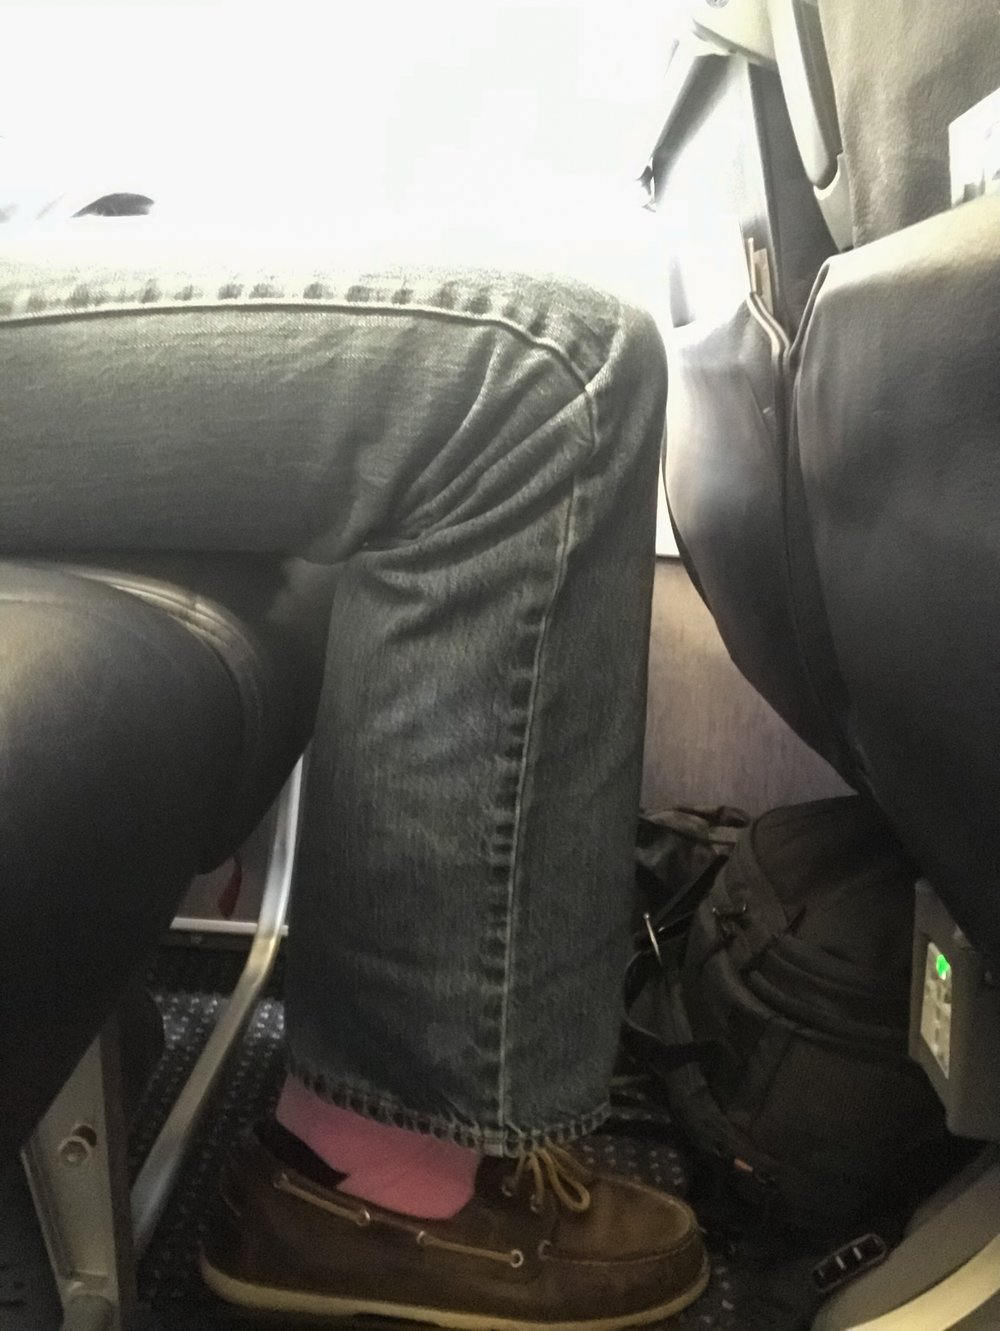 I'm 72 inches tall and had an extra inch or two to spare before my knees touched the seat in front of me. My seatmate was a little taller than me and complained about the legroom.